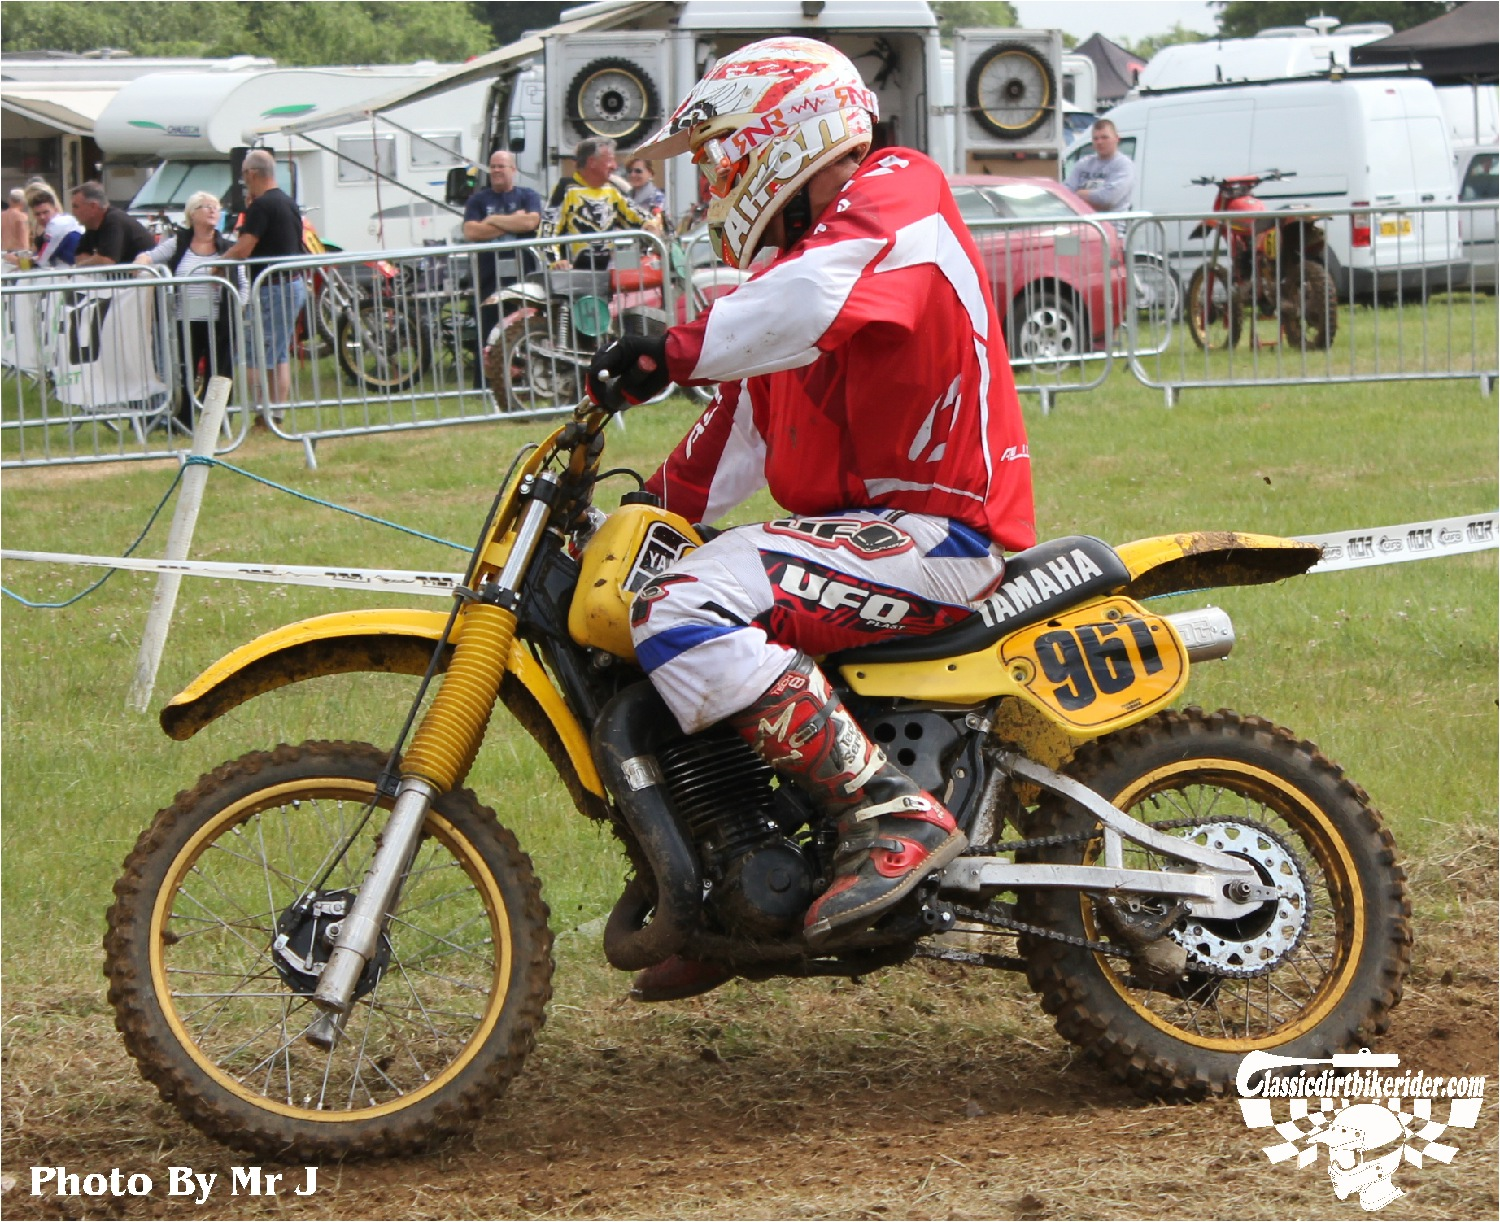 king of the castle 2015 photos Farleigh Castle twinshock motocross classicdirtbikerider.com 29